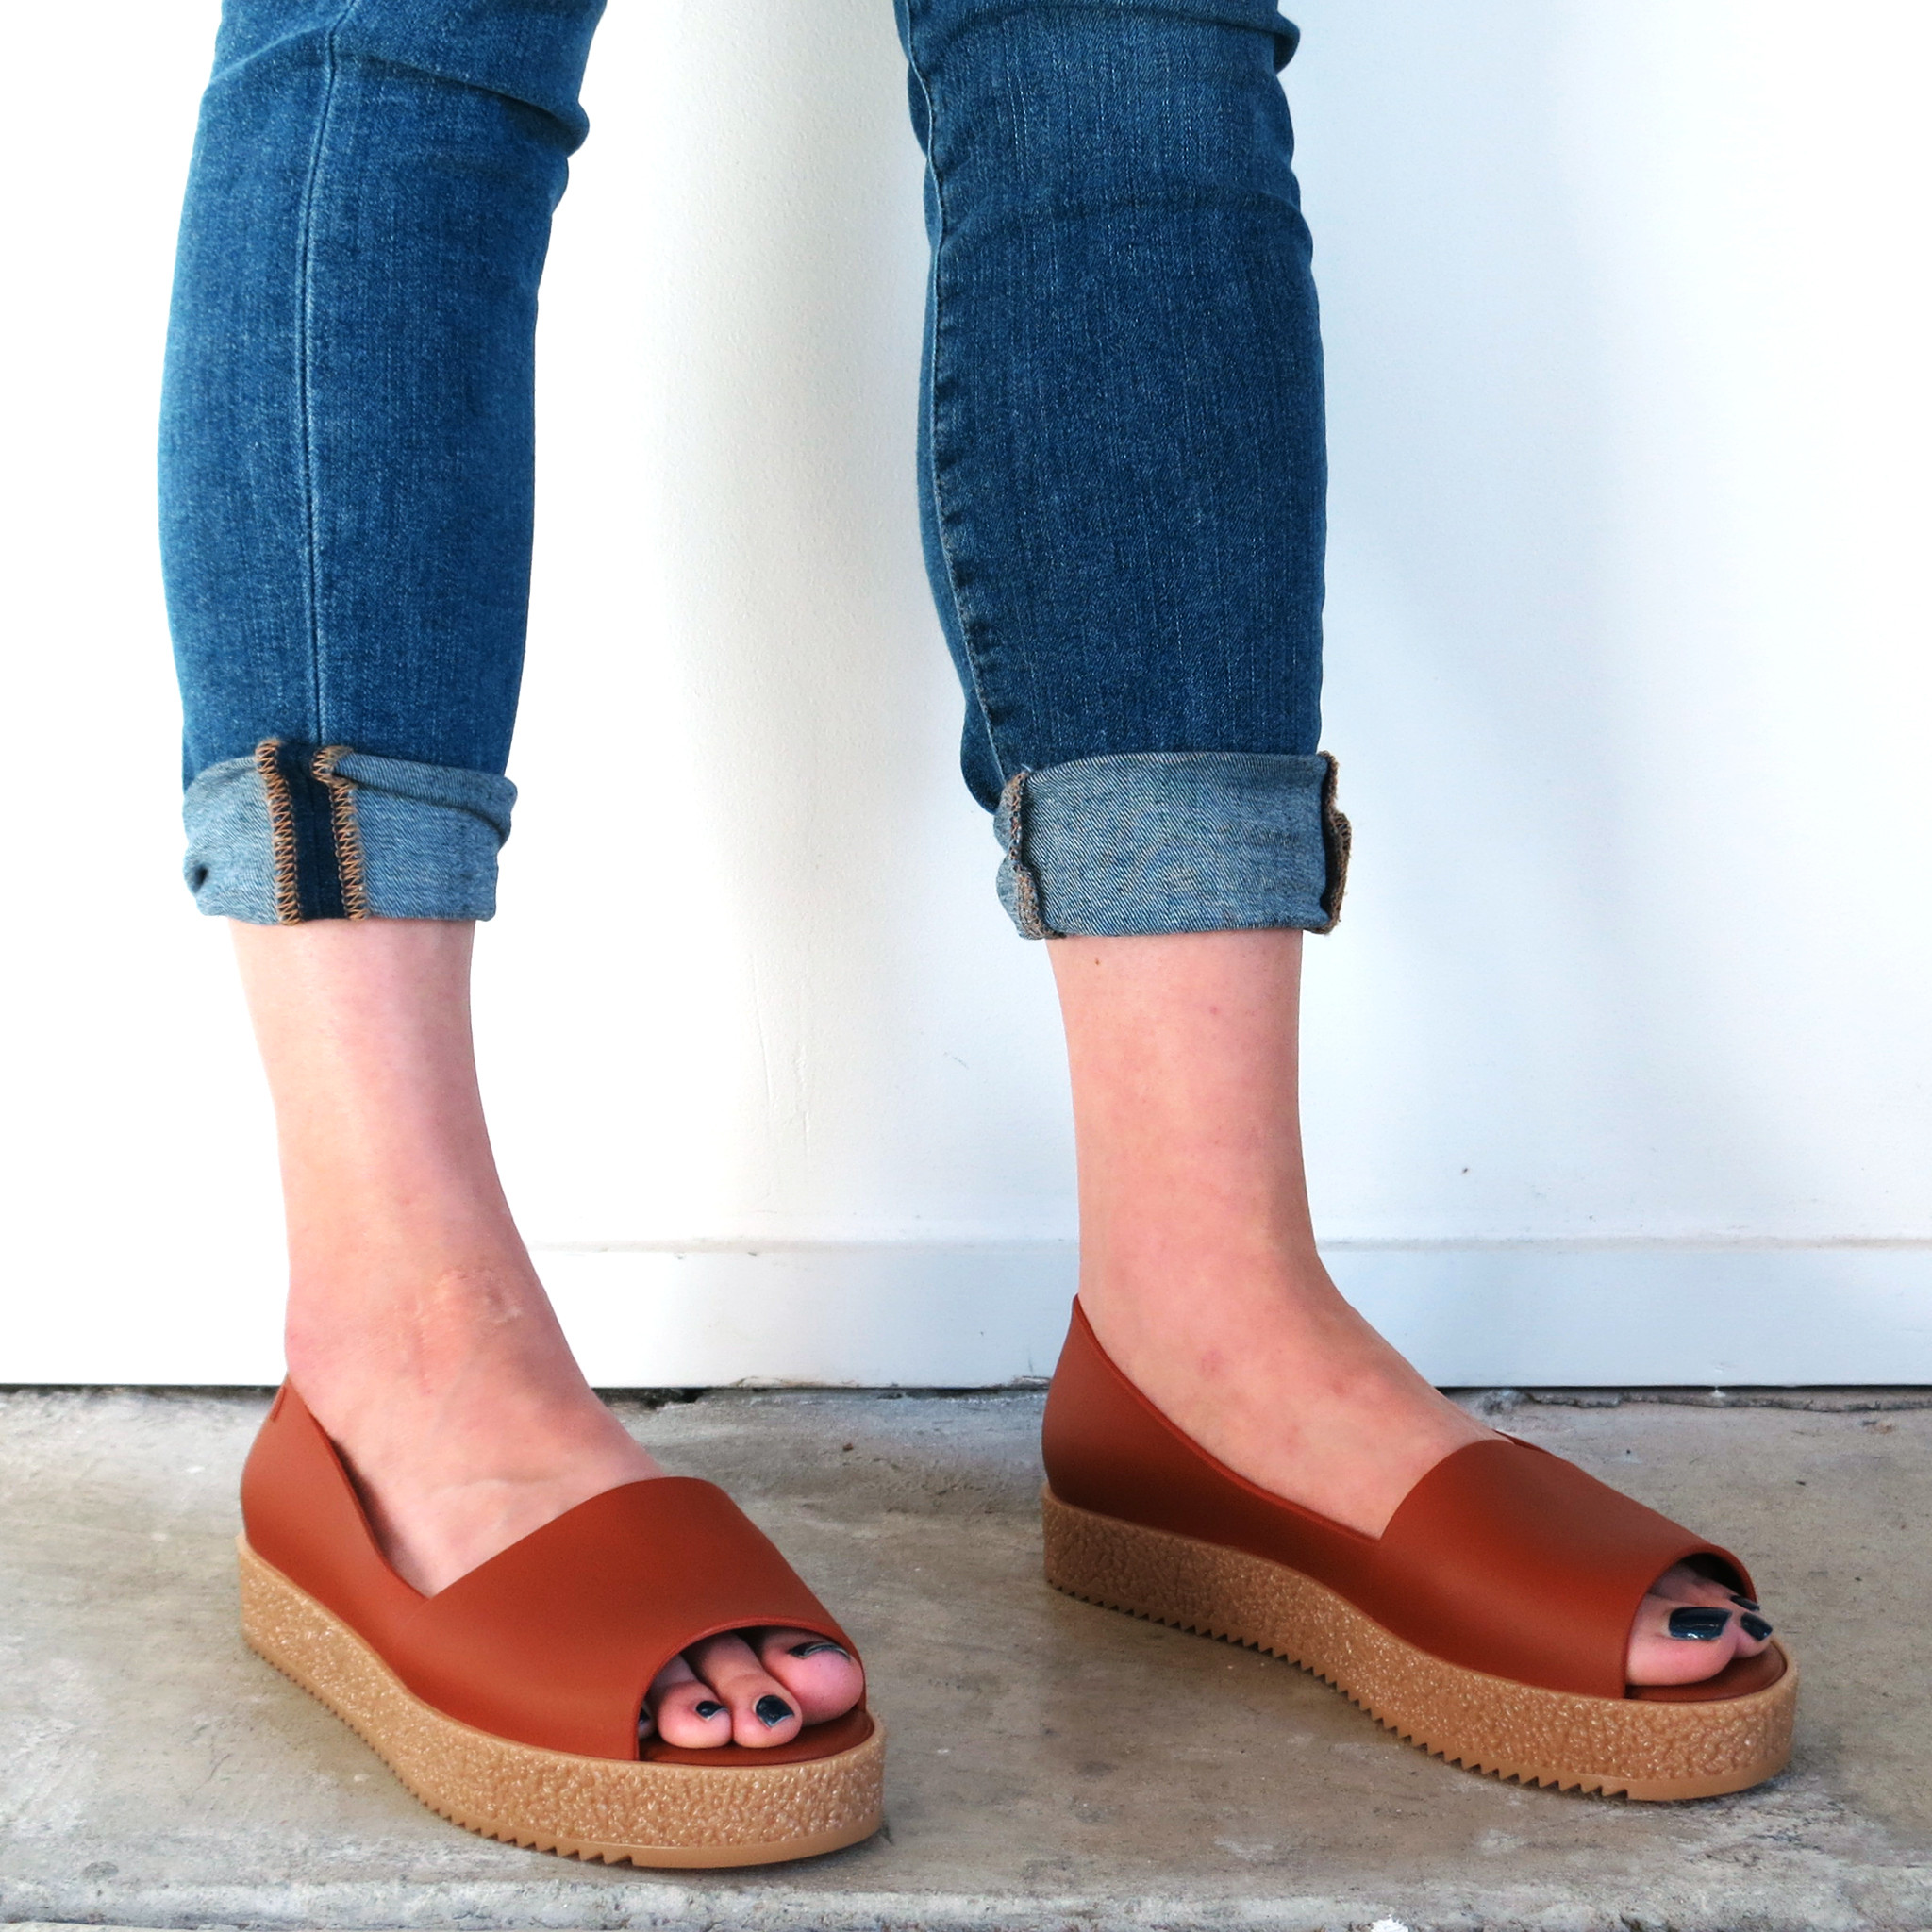 Melissa Shoes For Women On Sale